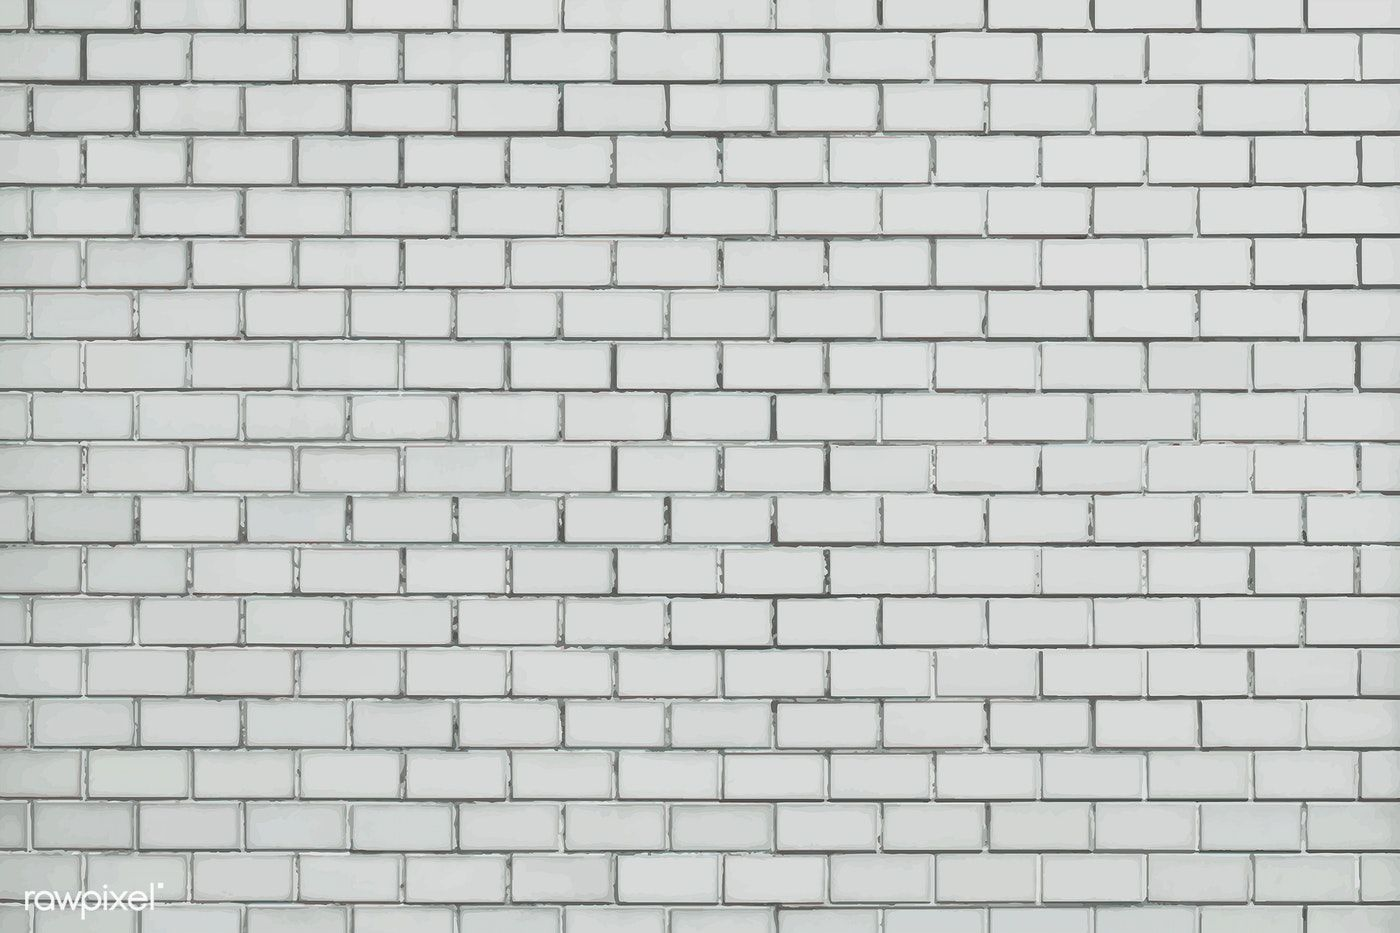 Download Premium Vector Of White Brick Wall Textured Background 514135 In 2021 White Brick Brick Wall Textured Walls